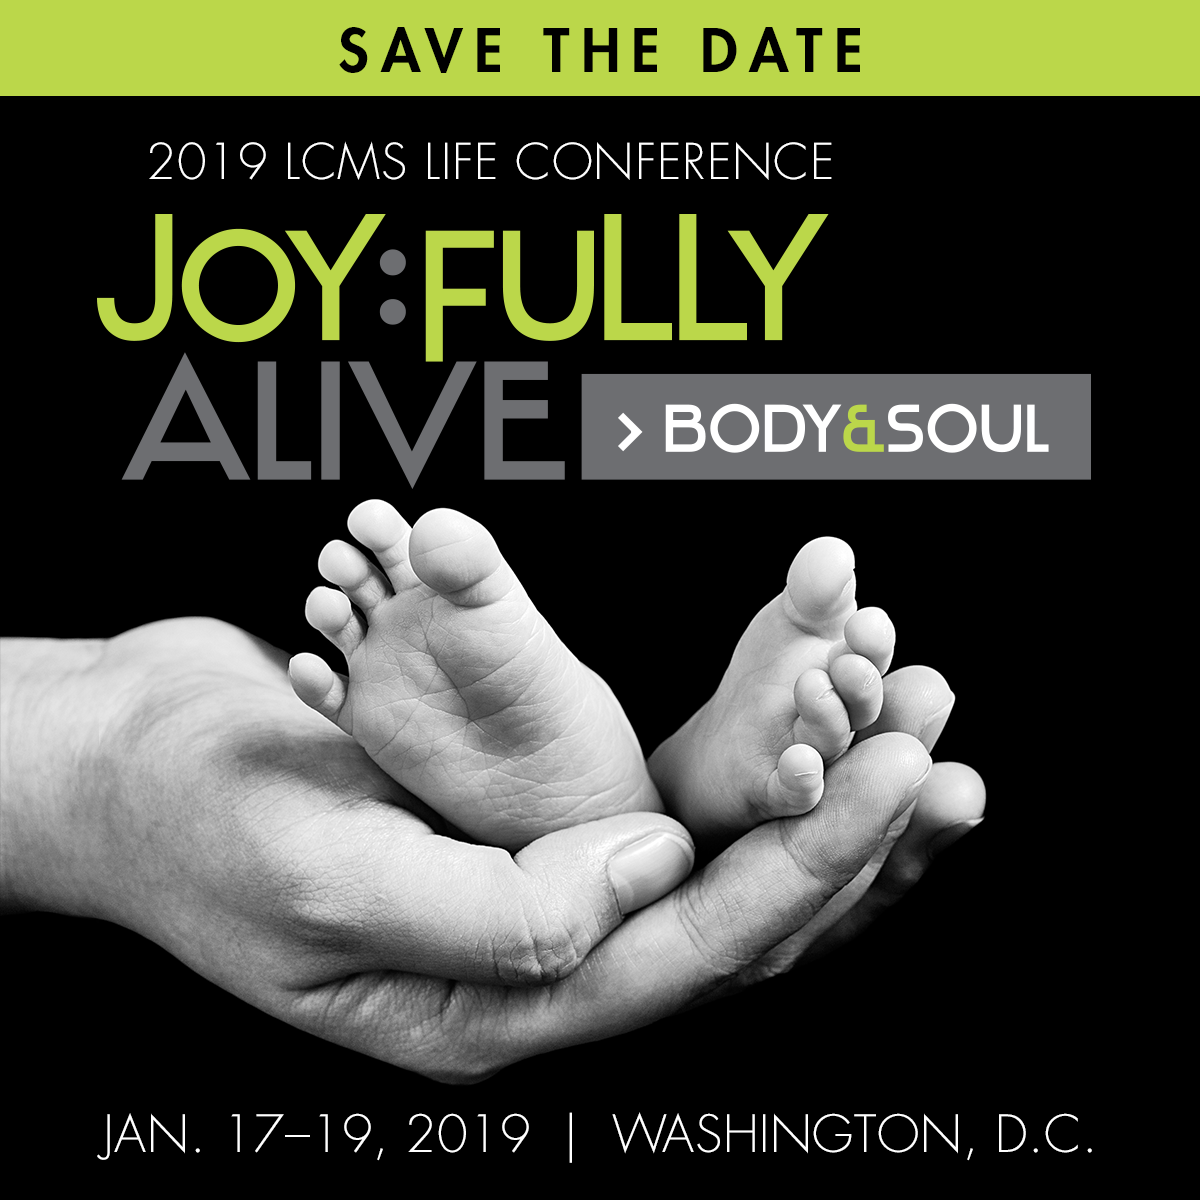 2019 lcms life conference in washington dc